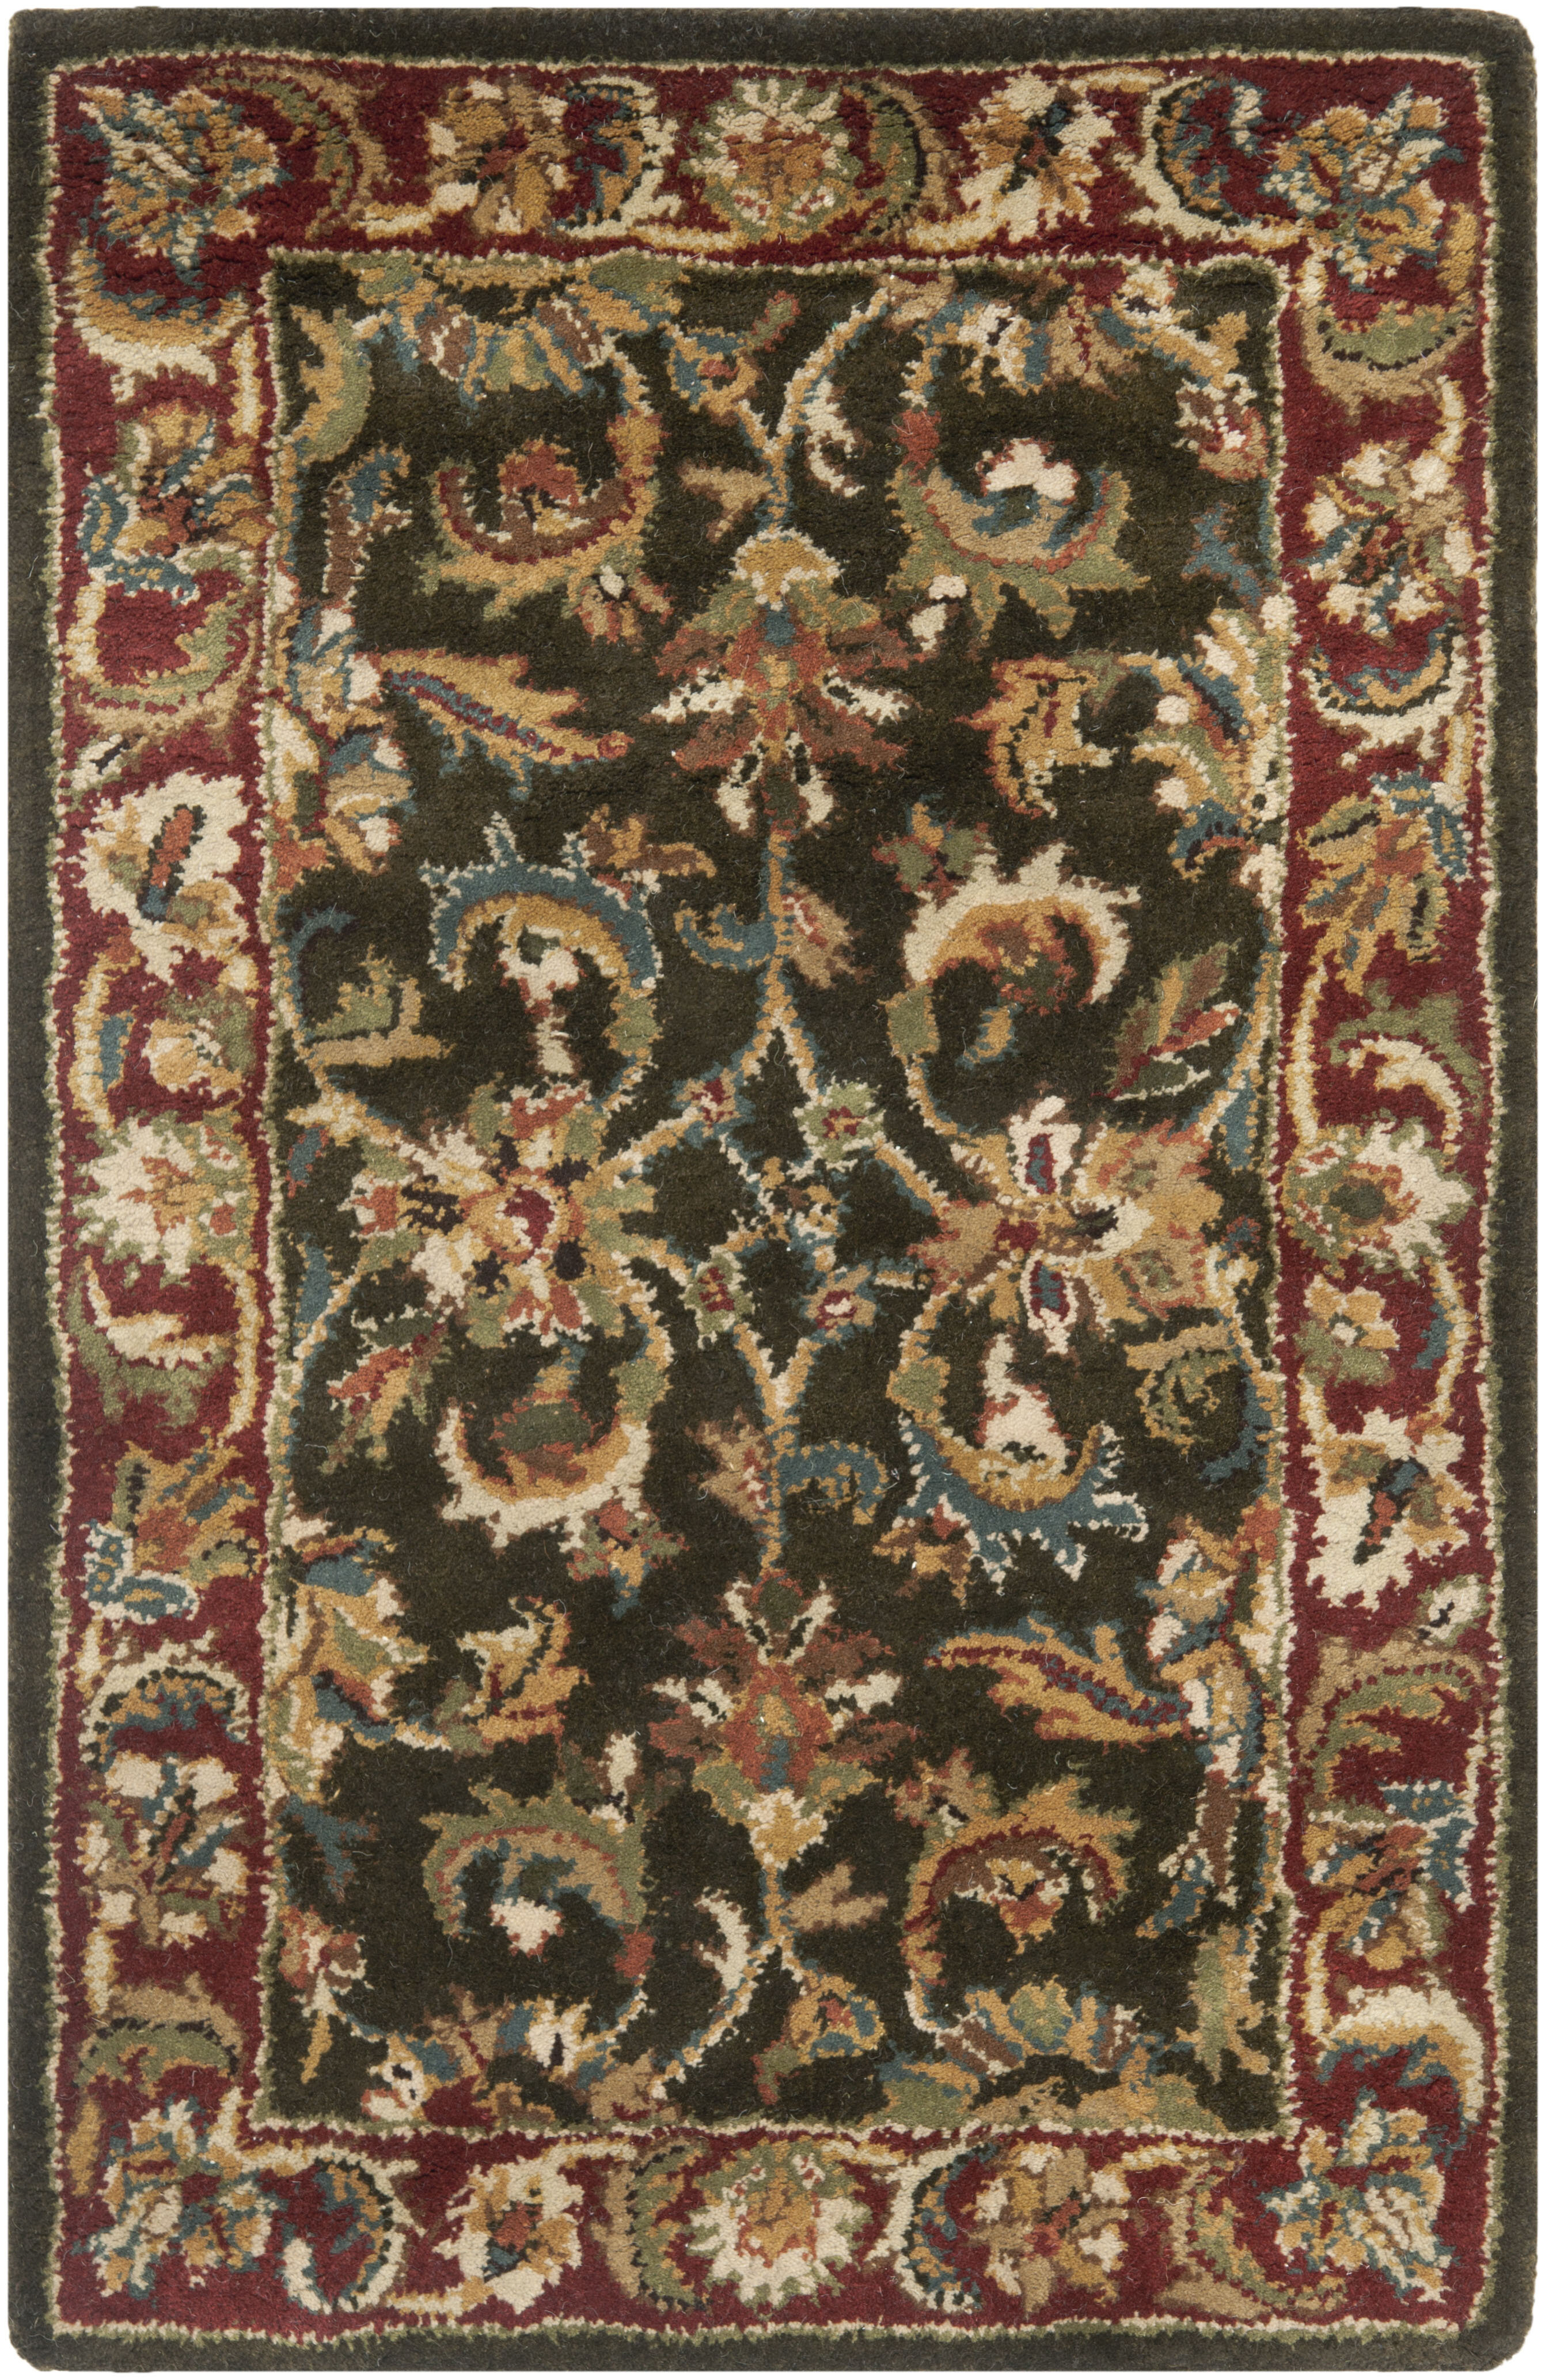 Safavieh Classic Hand Tufted Wool Dark Olive Red Area Rug Perigold